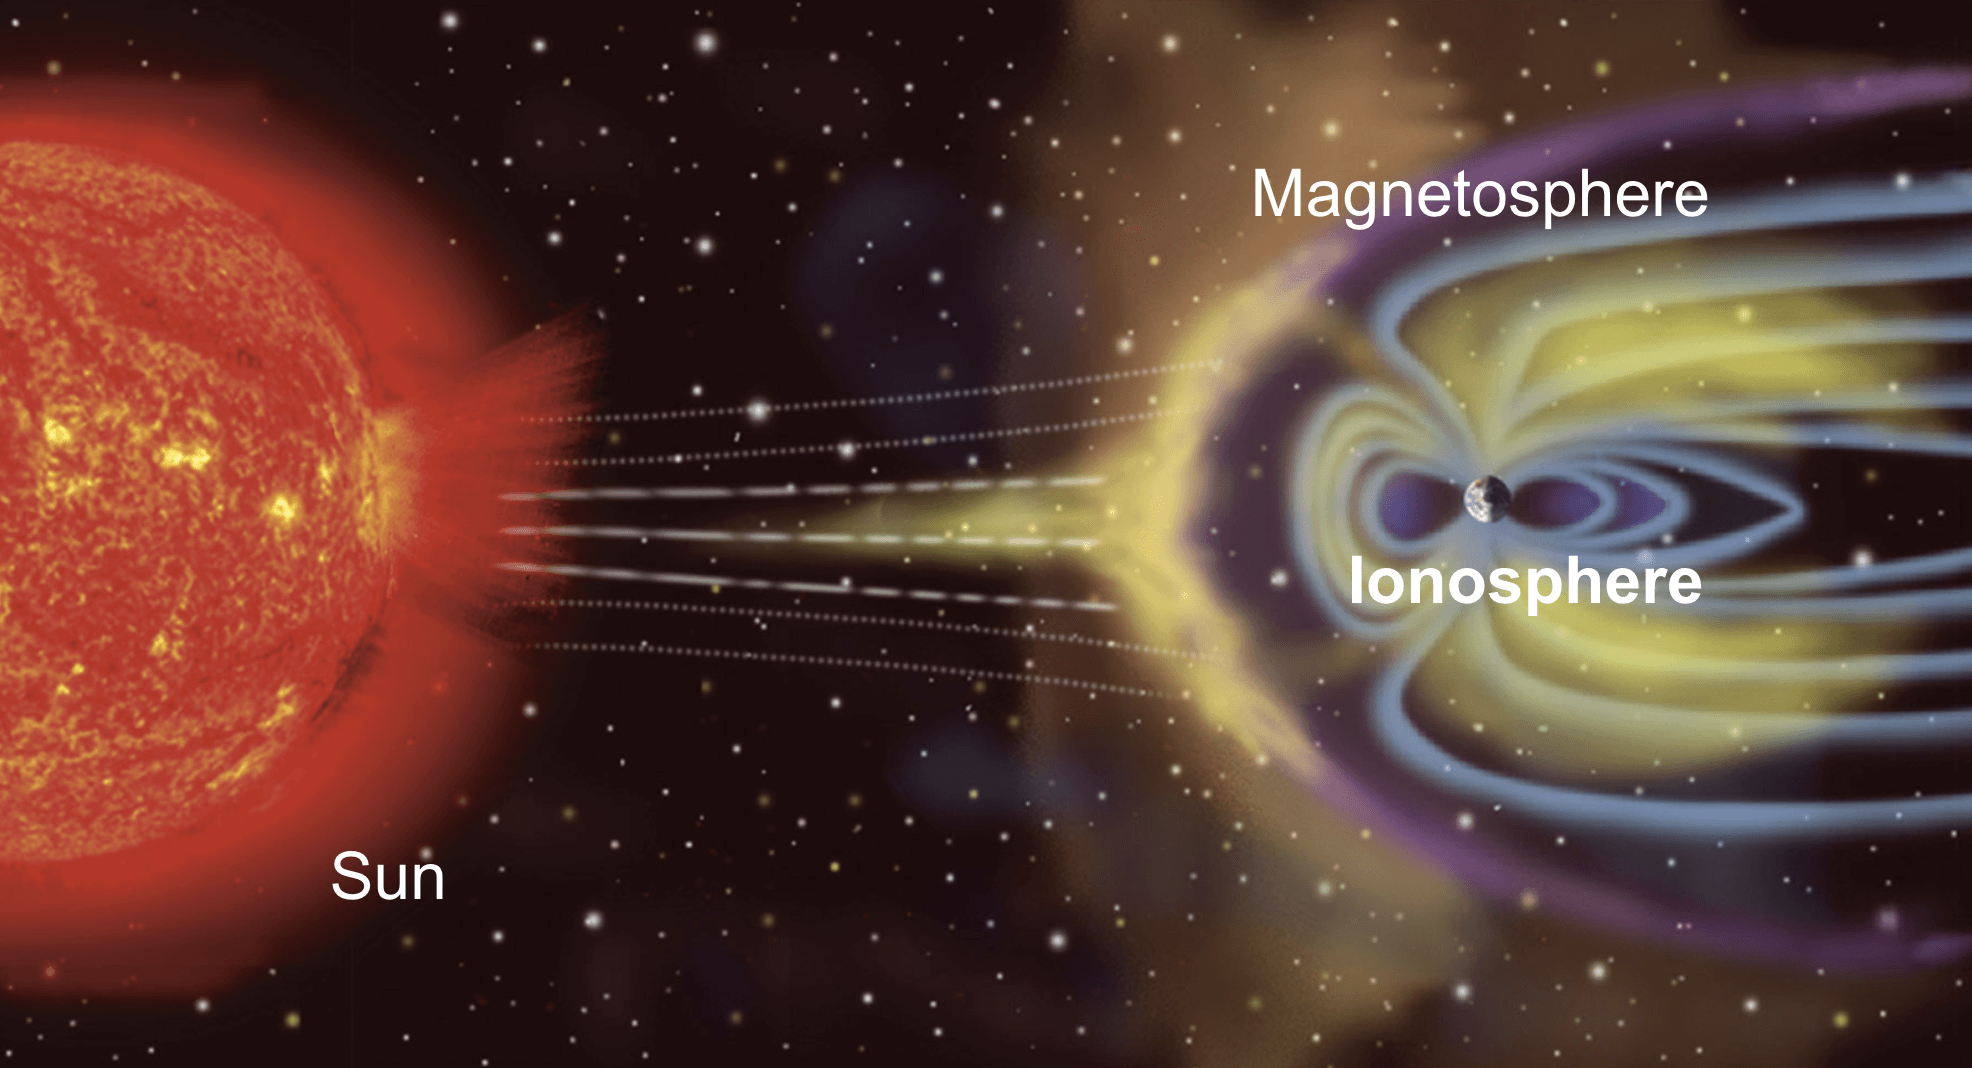 Figure 2: The ionosphere and magnetosphere that surround the Earth. Picture courtesy: NASA FDL